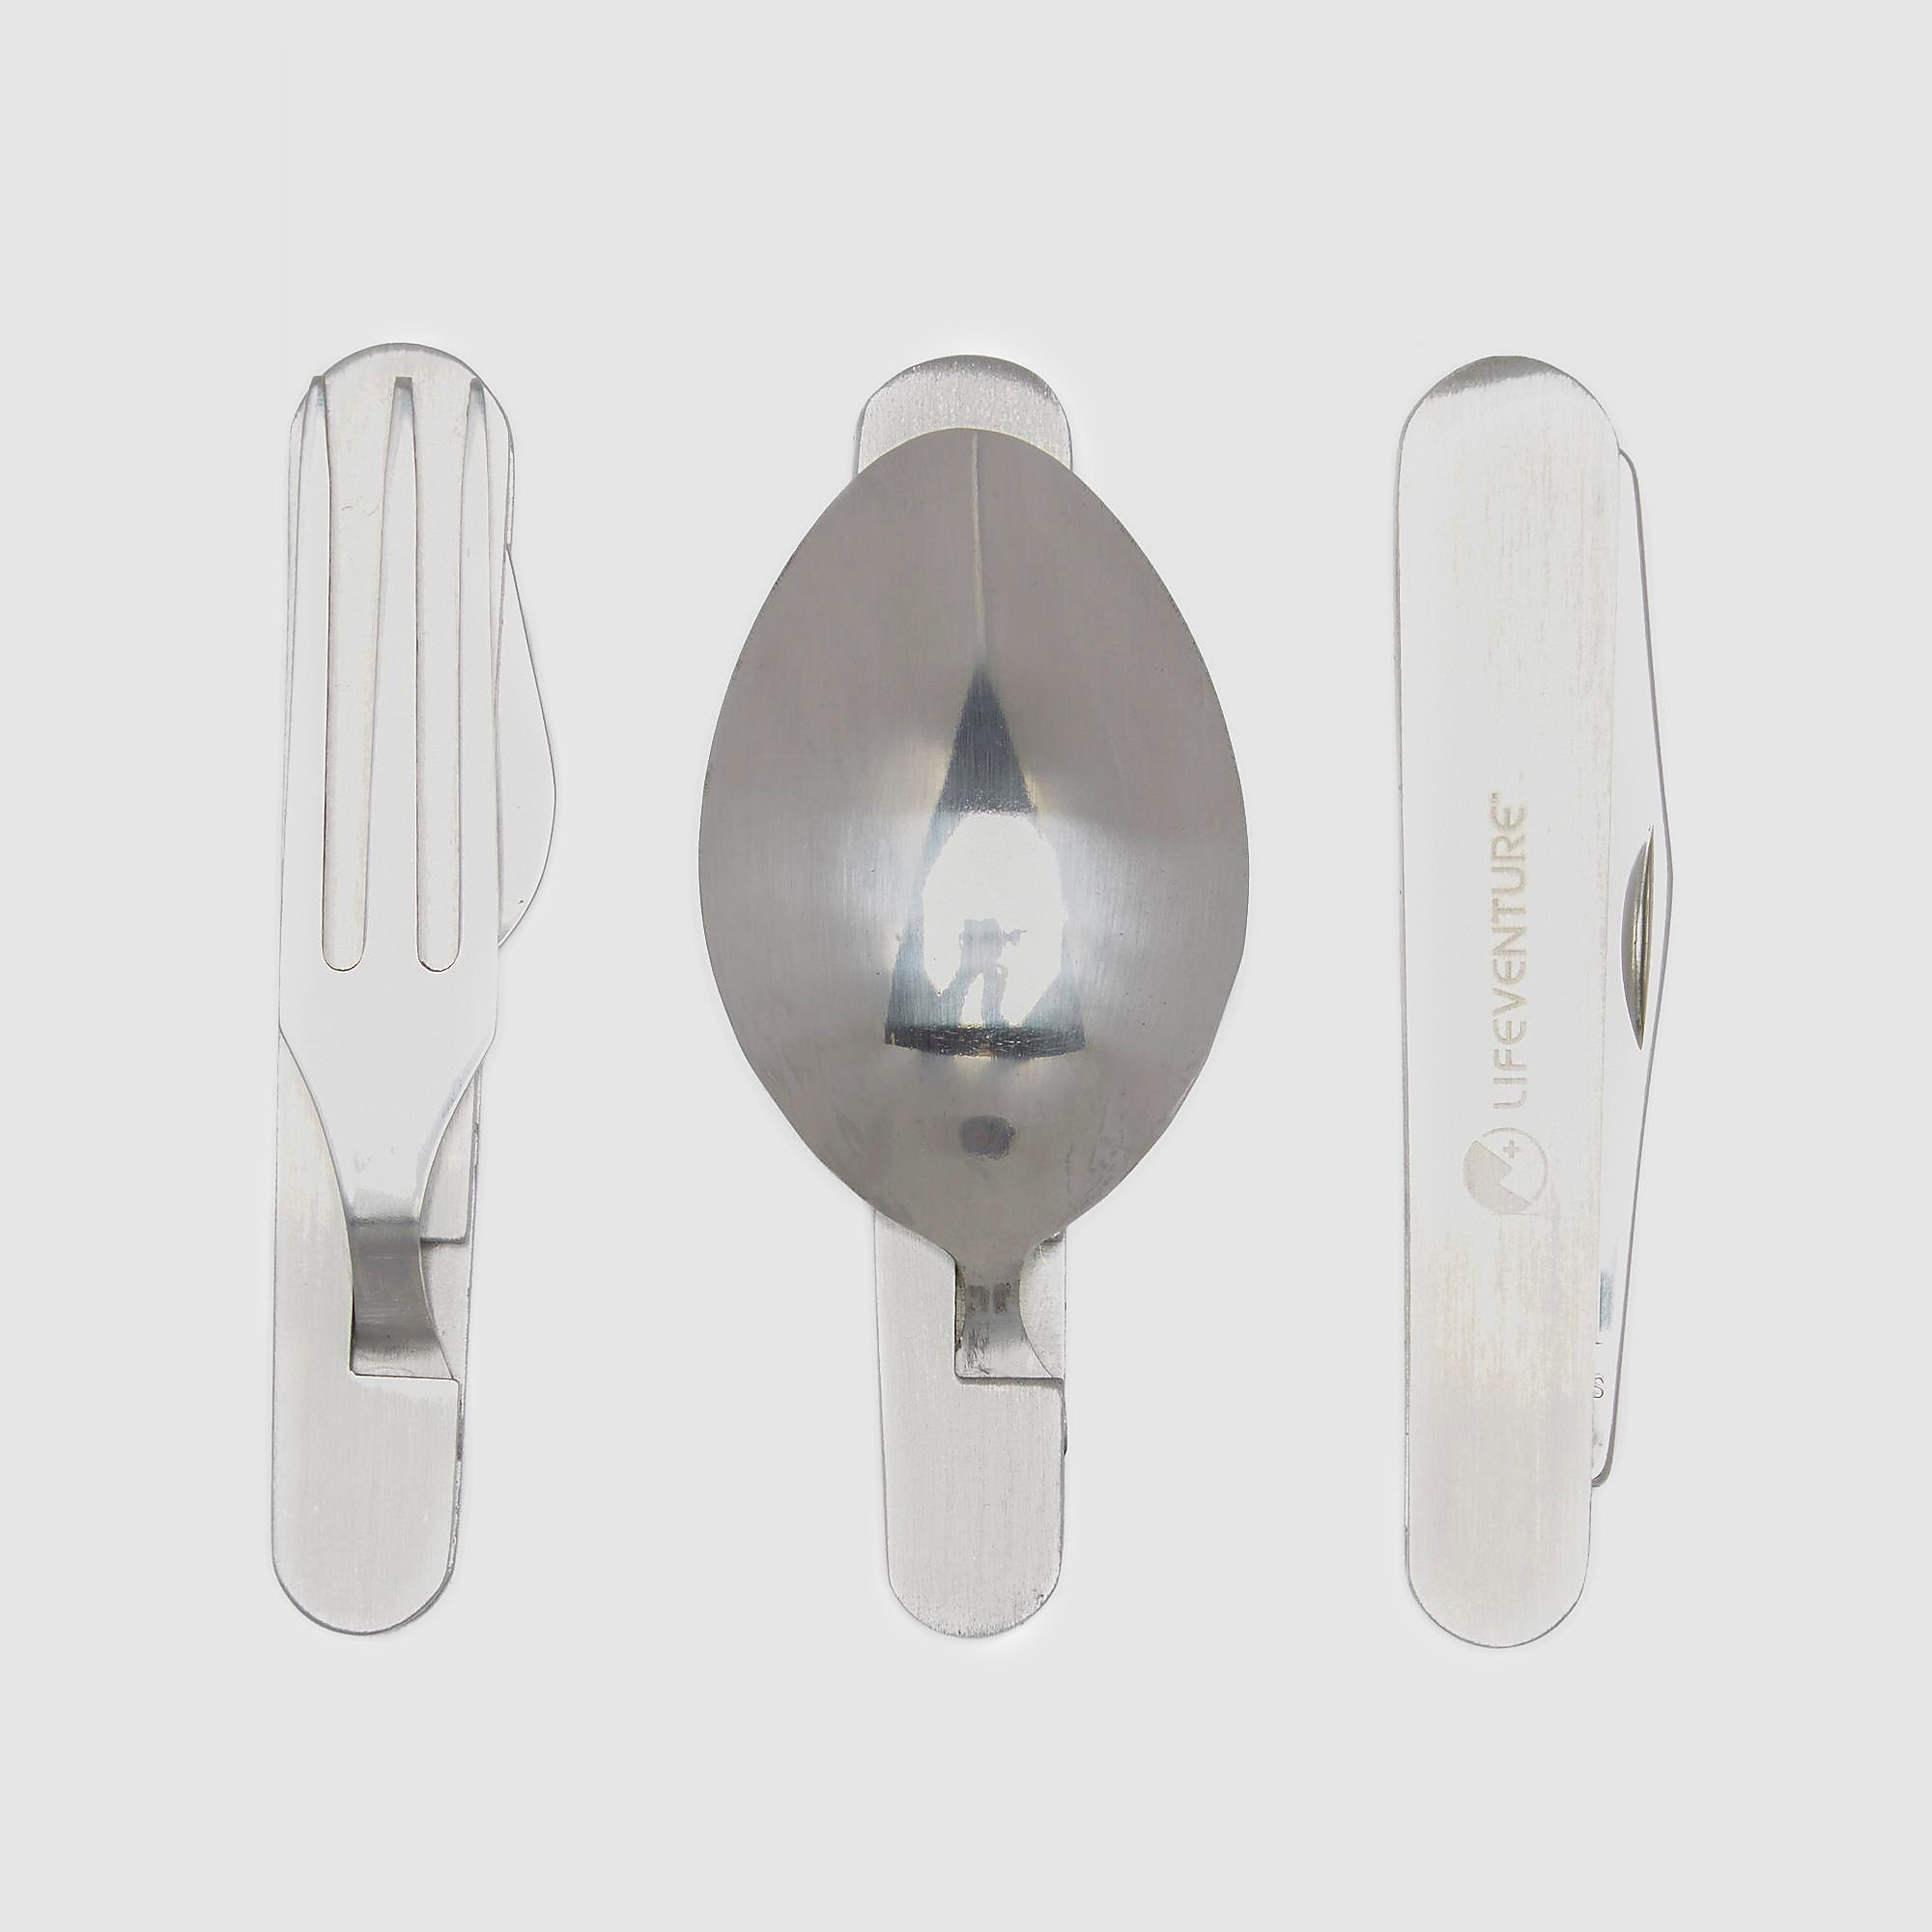 Life Systems Knife, Fork, Spoon - Folding Cutlery Set